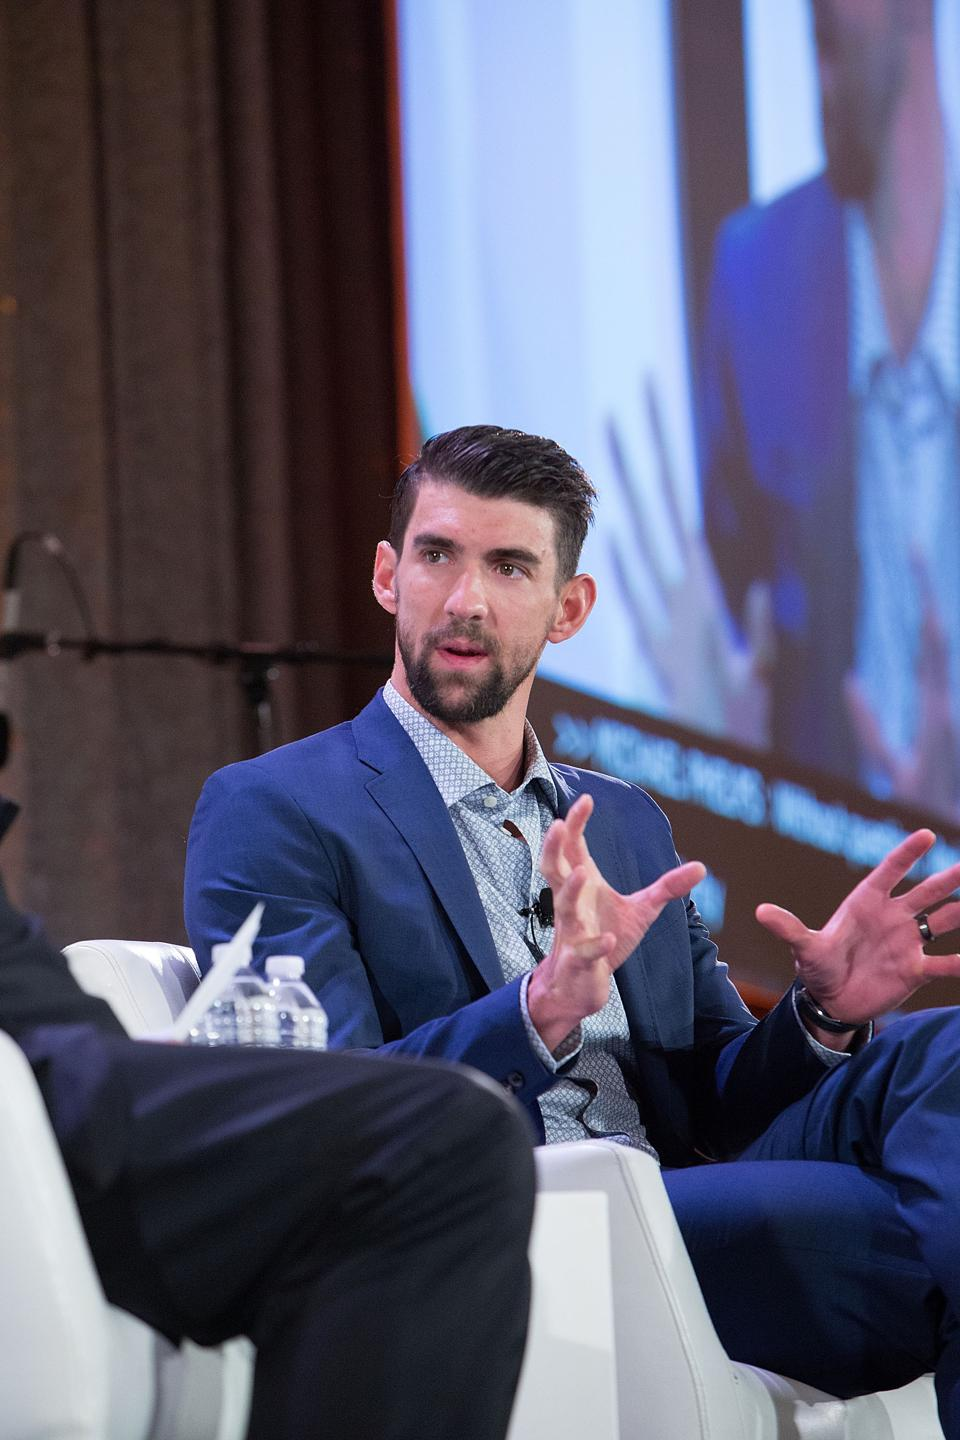 The Kennedy Forum Hosts National Summit On Mental Health Equity And Justice In Chicago With Michael Phelps And David Axelrod